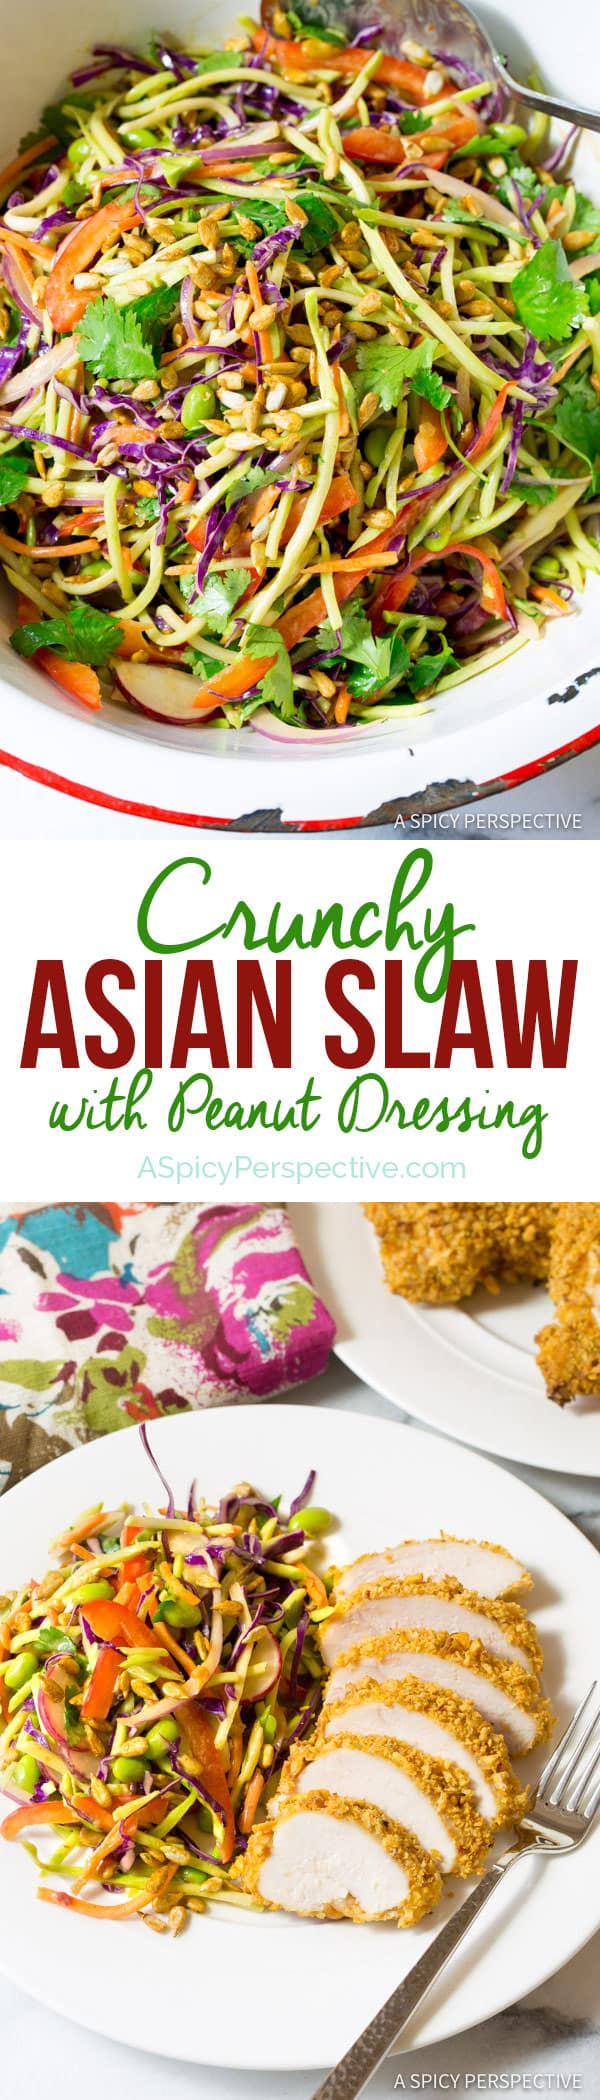 Colorful Crunchy Asian Slaw Recipe with Peanut Dressing | ASpicyPerspective.com